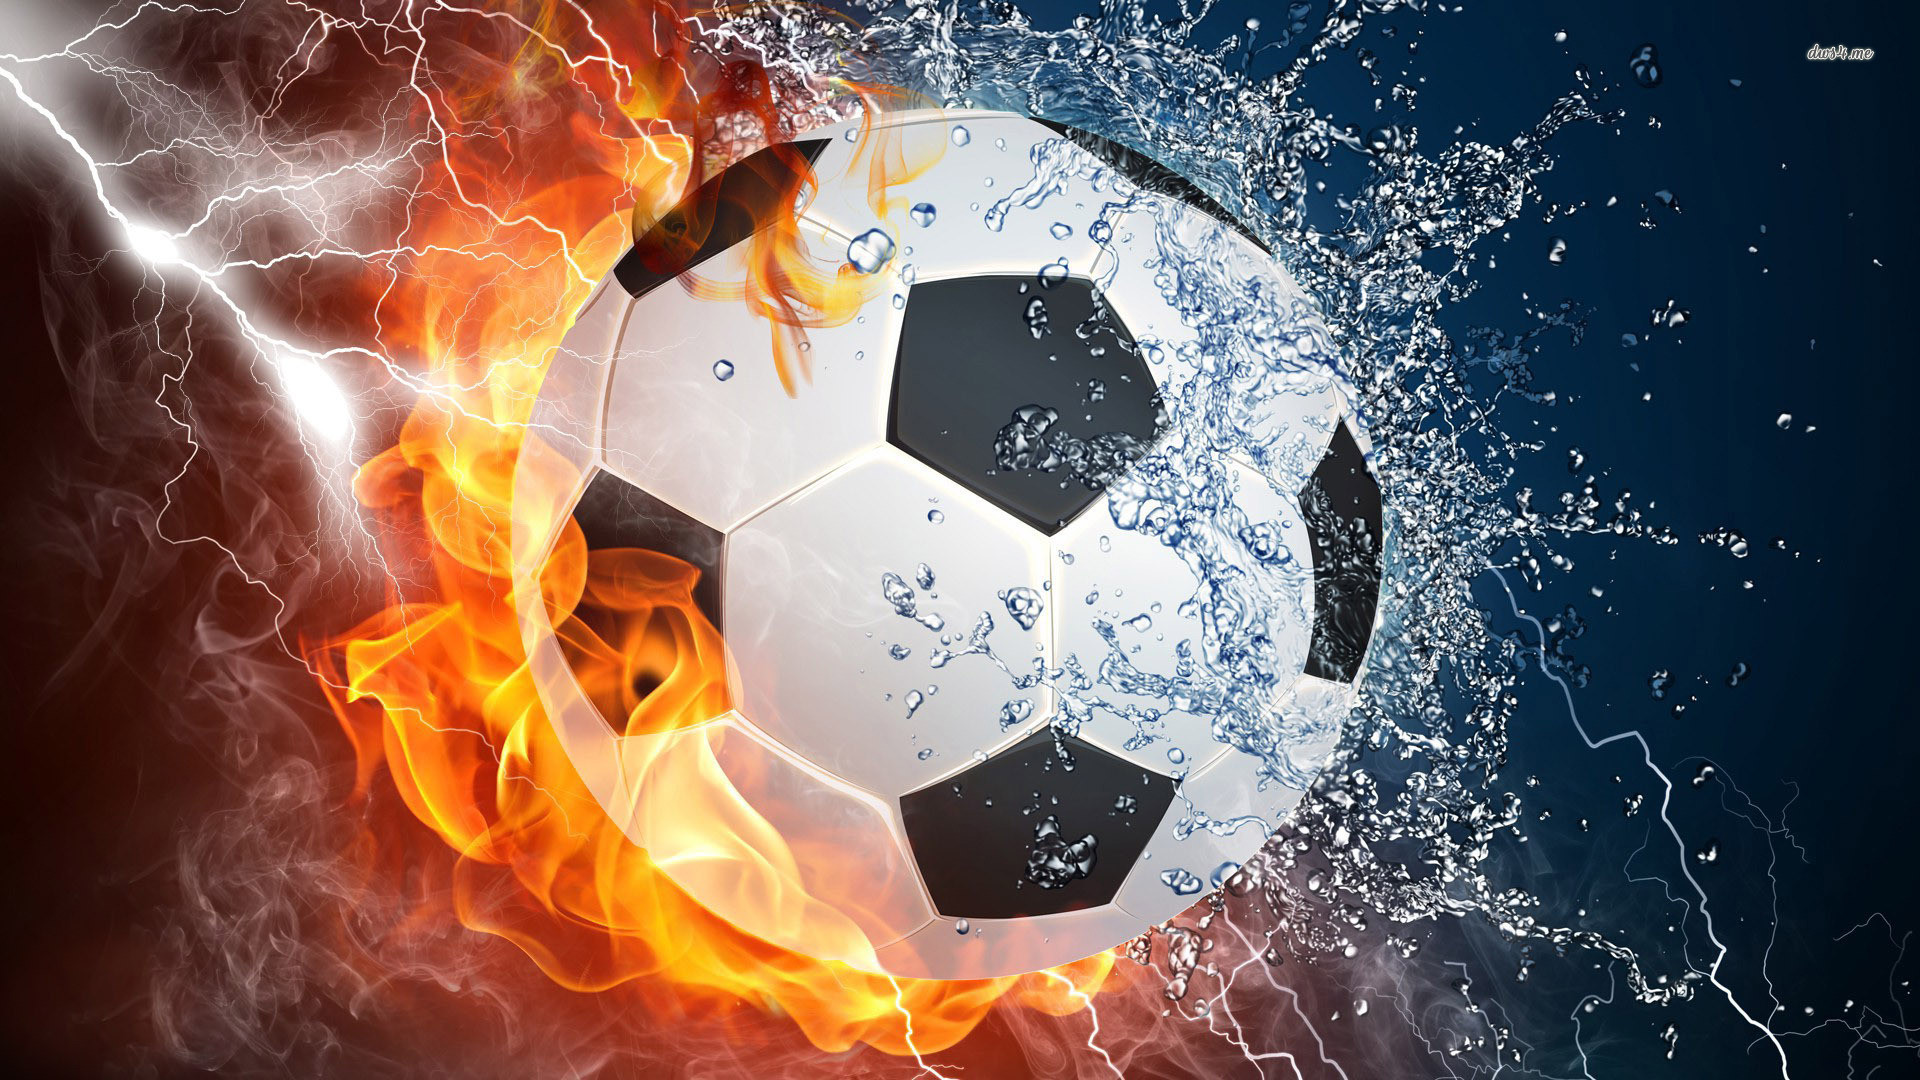 48 Cool Green Soccer Ball Wallpapers On Wallpapersafari: Flaming Soccer Ball Wallpaper (55+ Images